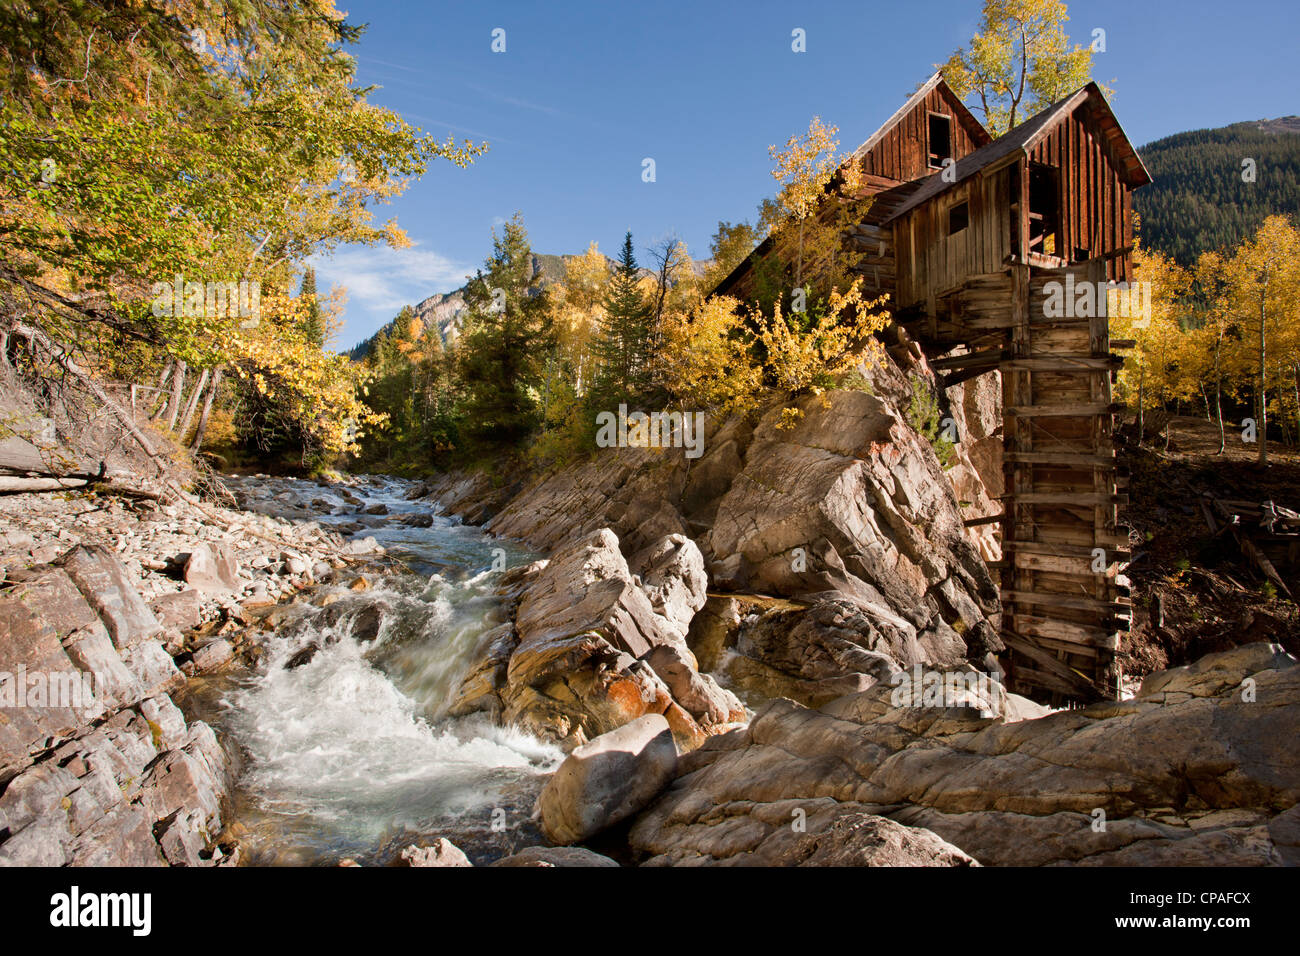 USA, Colorado, Gunnison National Forest. The landmark Crystal Mill next to the Crystal River - Stock Image